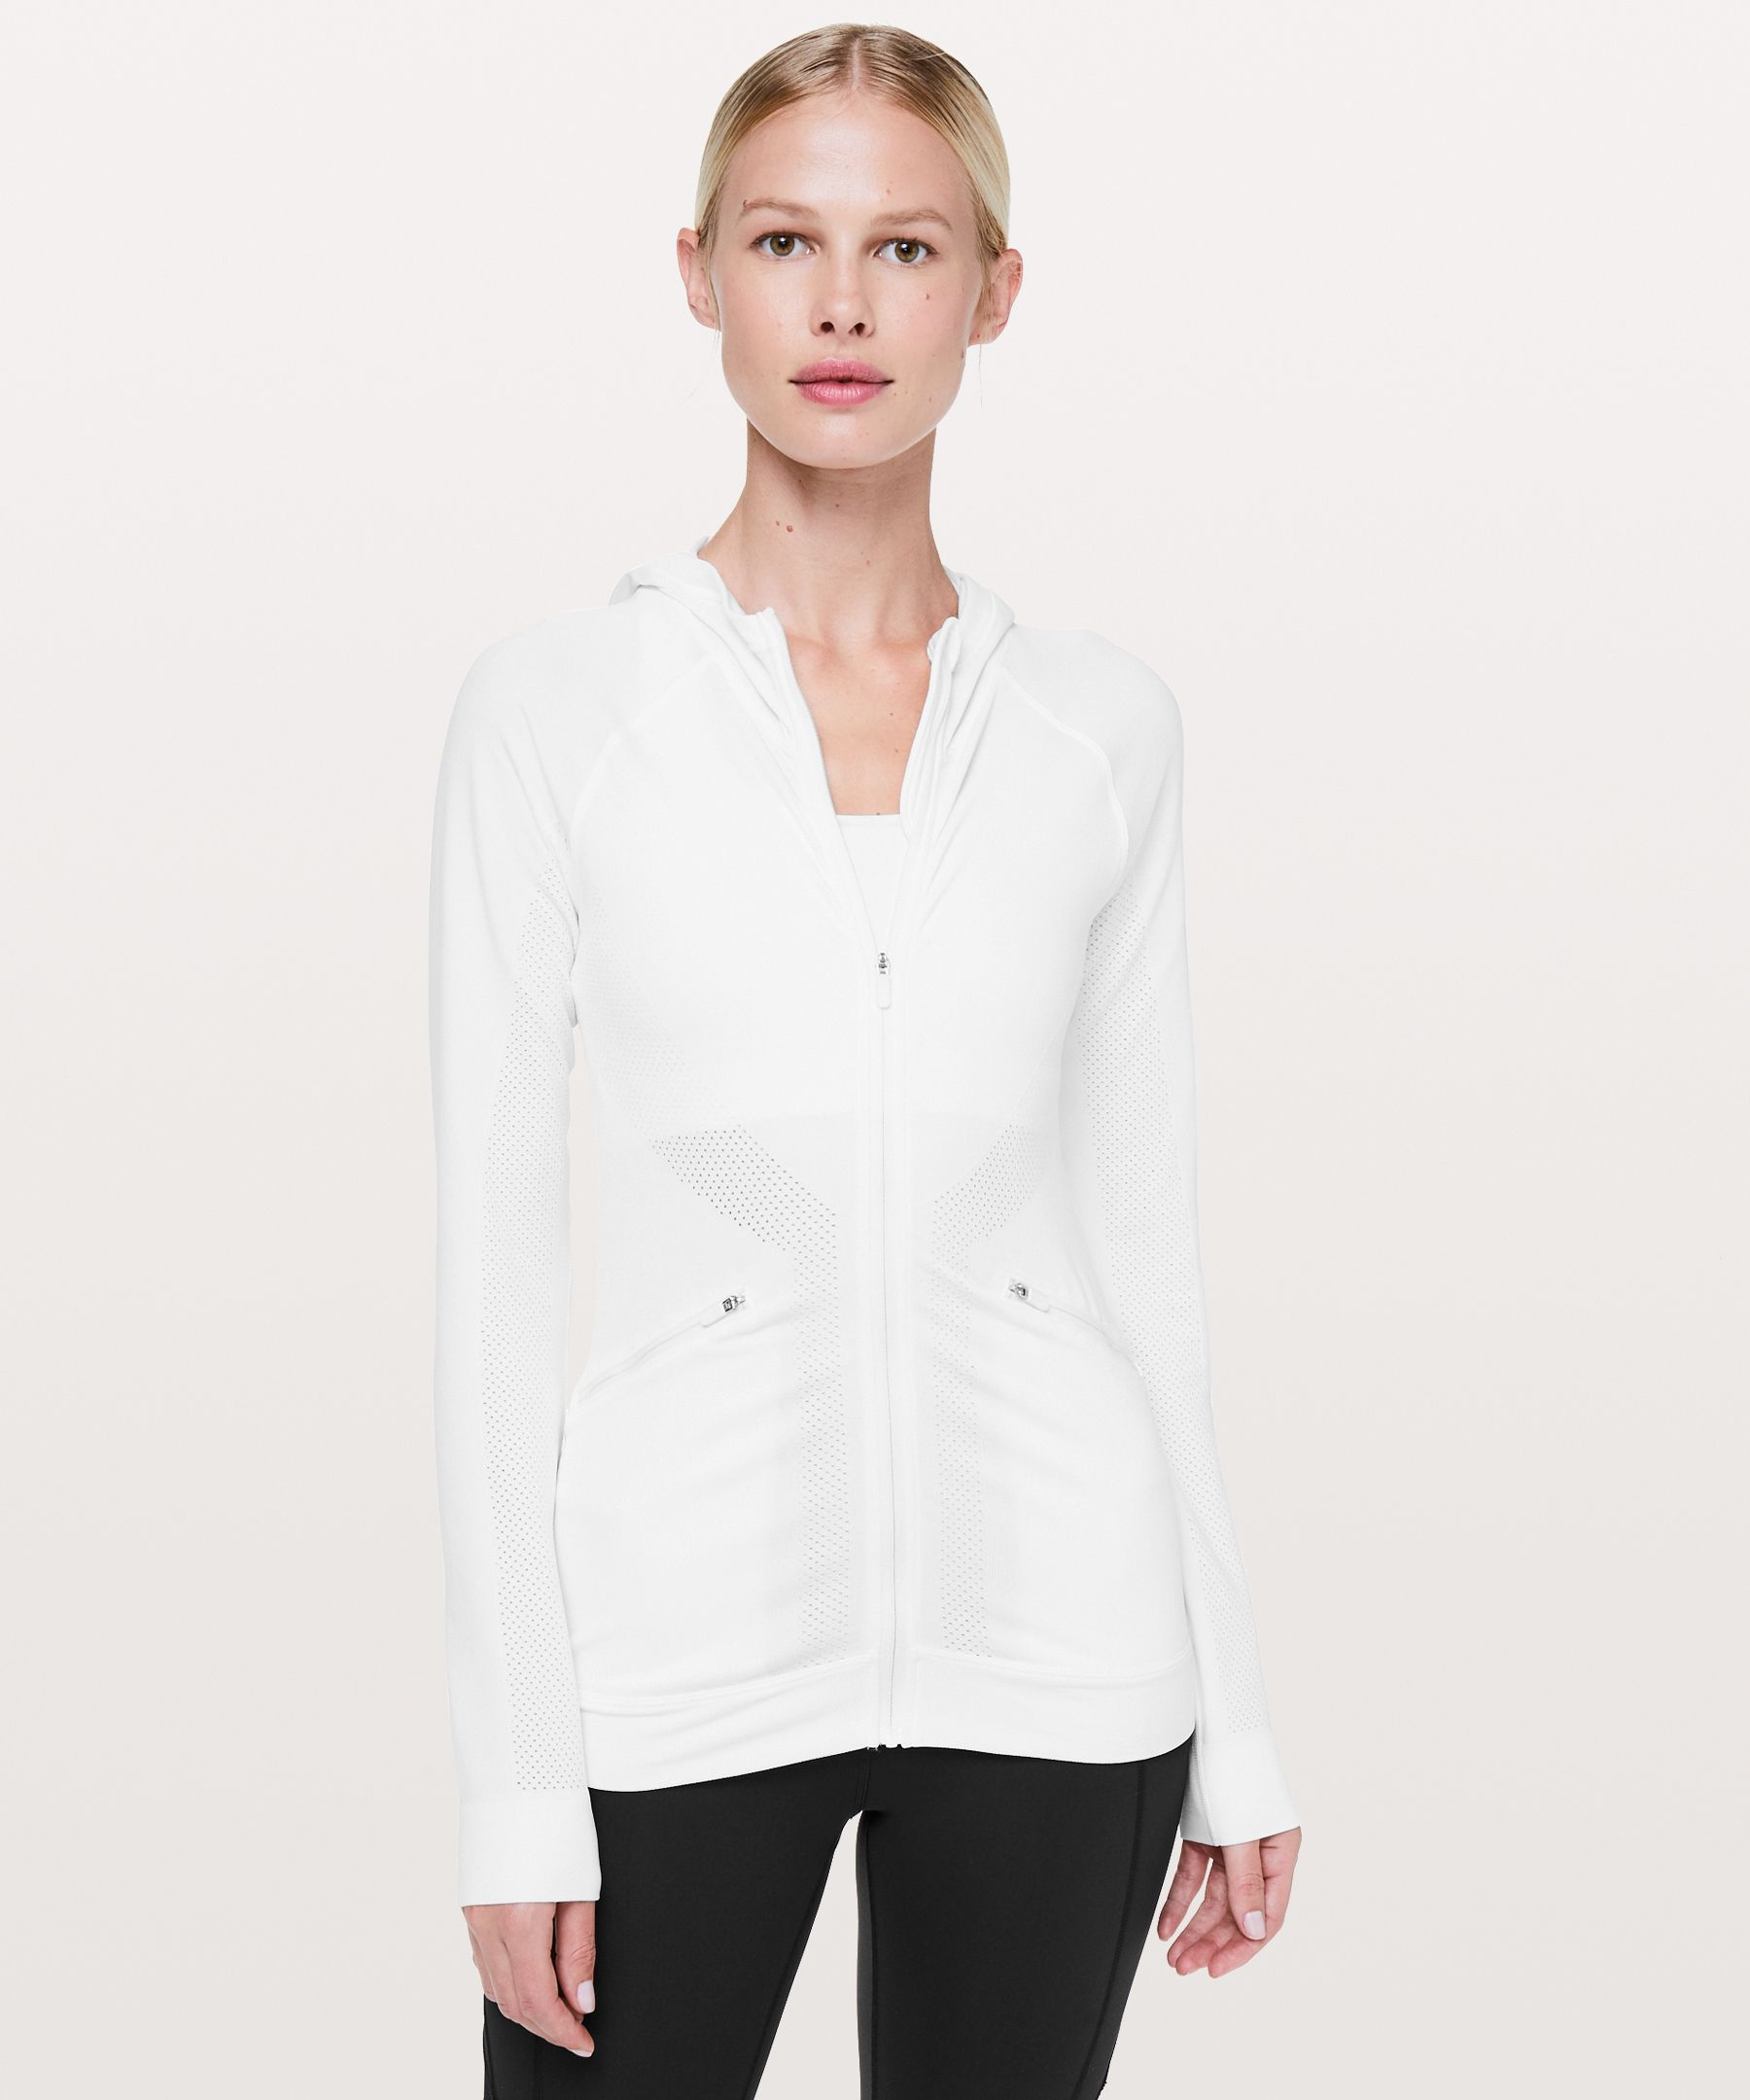 Lululemon Ventilate Jacket In White